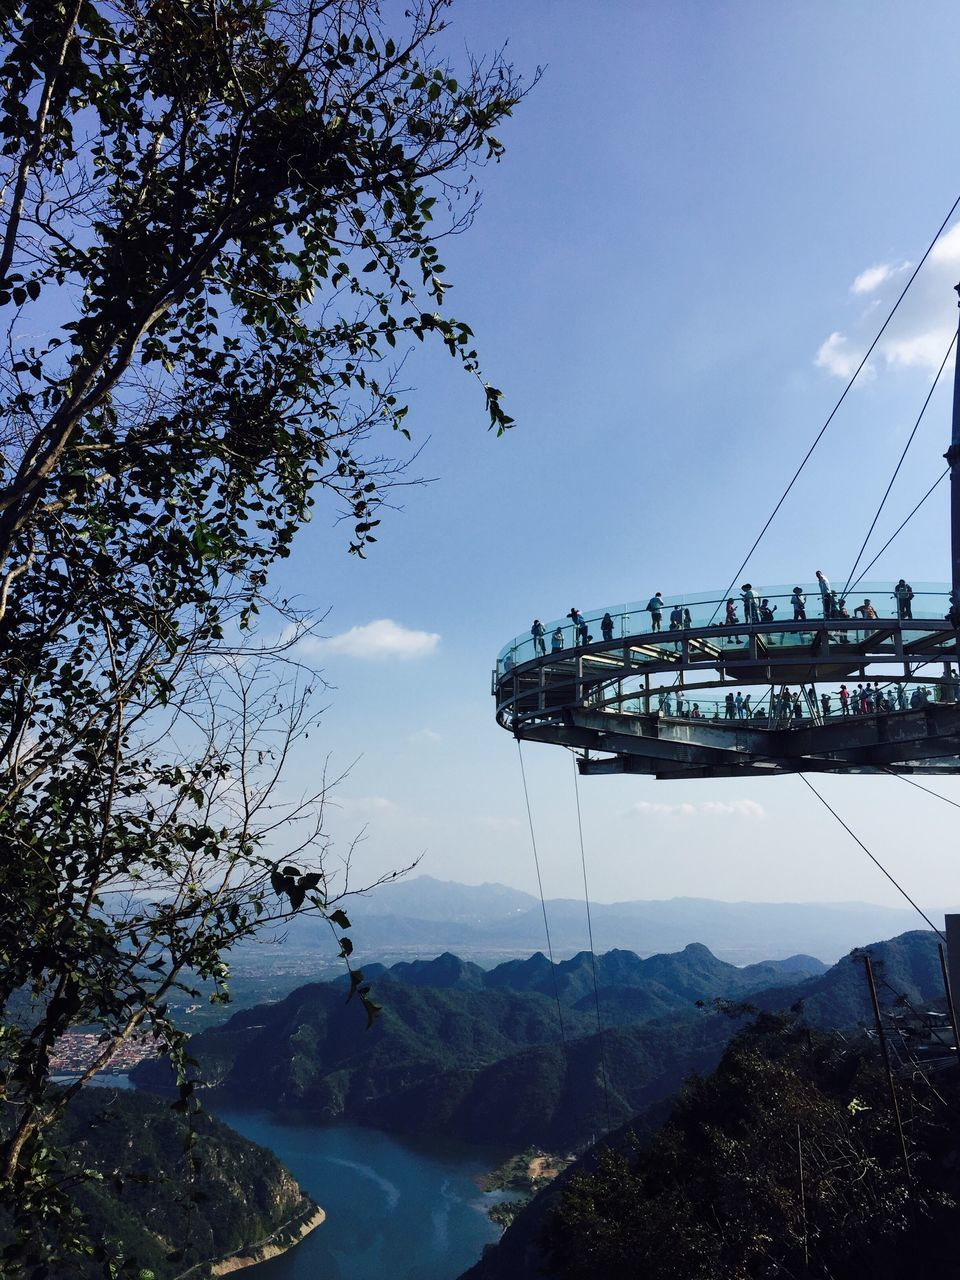 mountain, sky, tree, nature, transportation, mode of transport, beauty in nature, scenics, water, outdoors, tranquil scene, day, cloud - sky, no people, mountain range, tranquility, nautical vessel, overhead cable car, sea, architecture